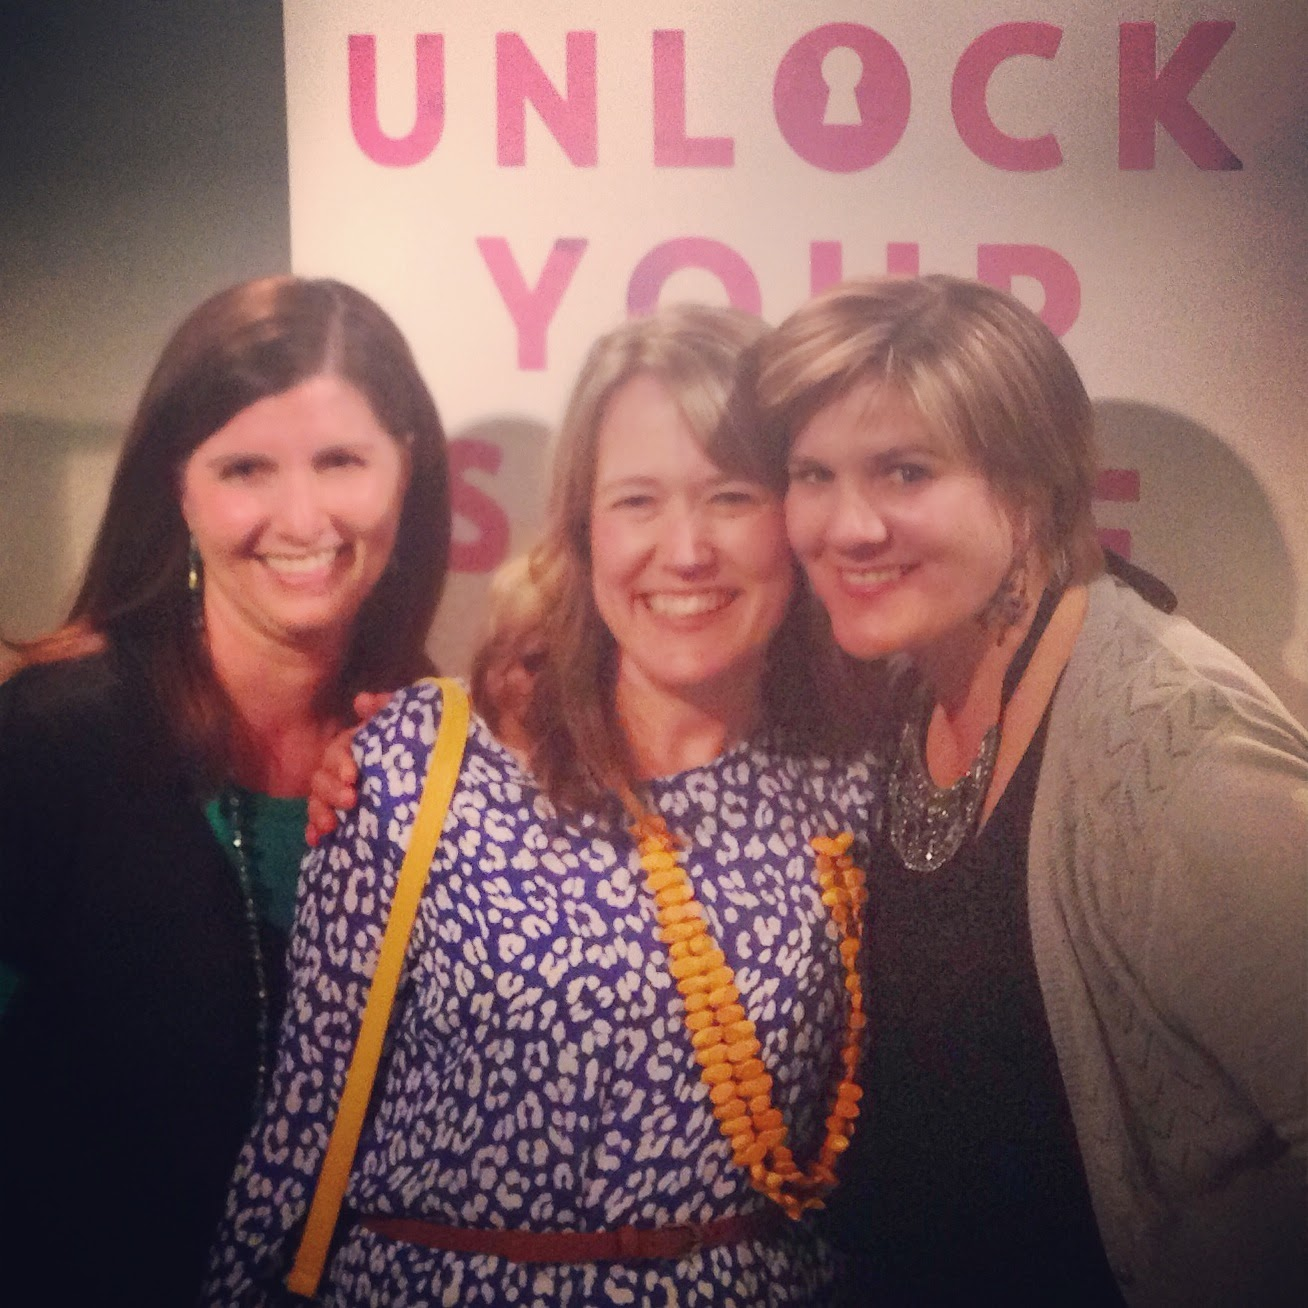 Unlock Your Style Book Launch